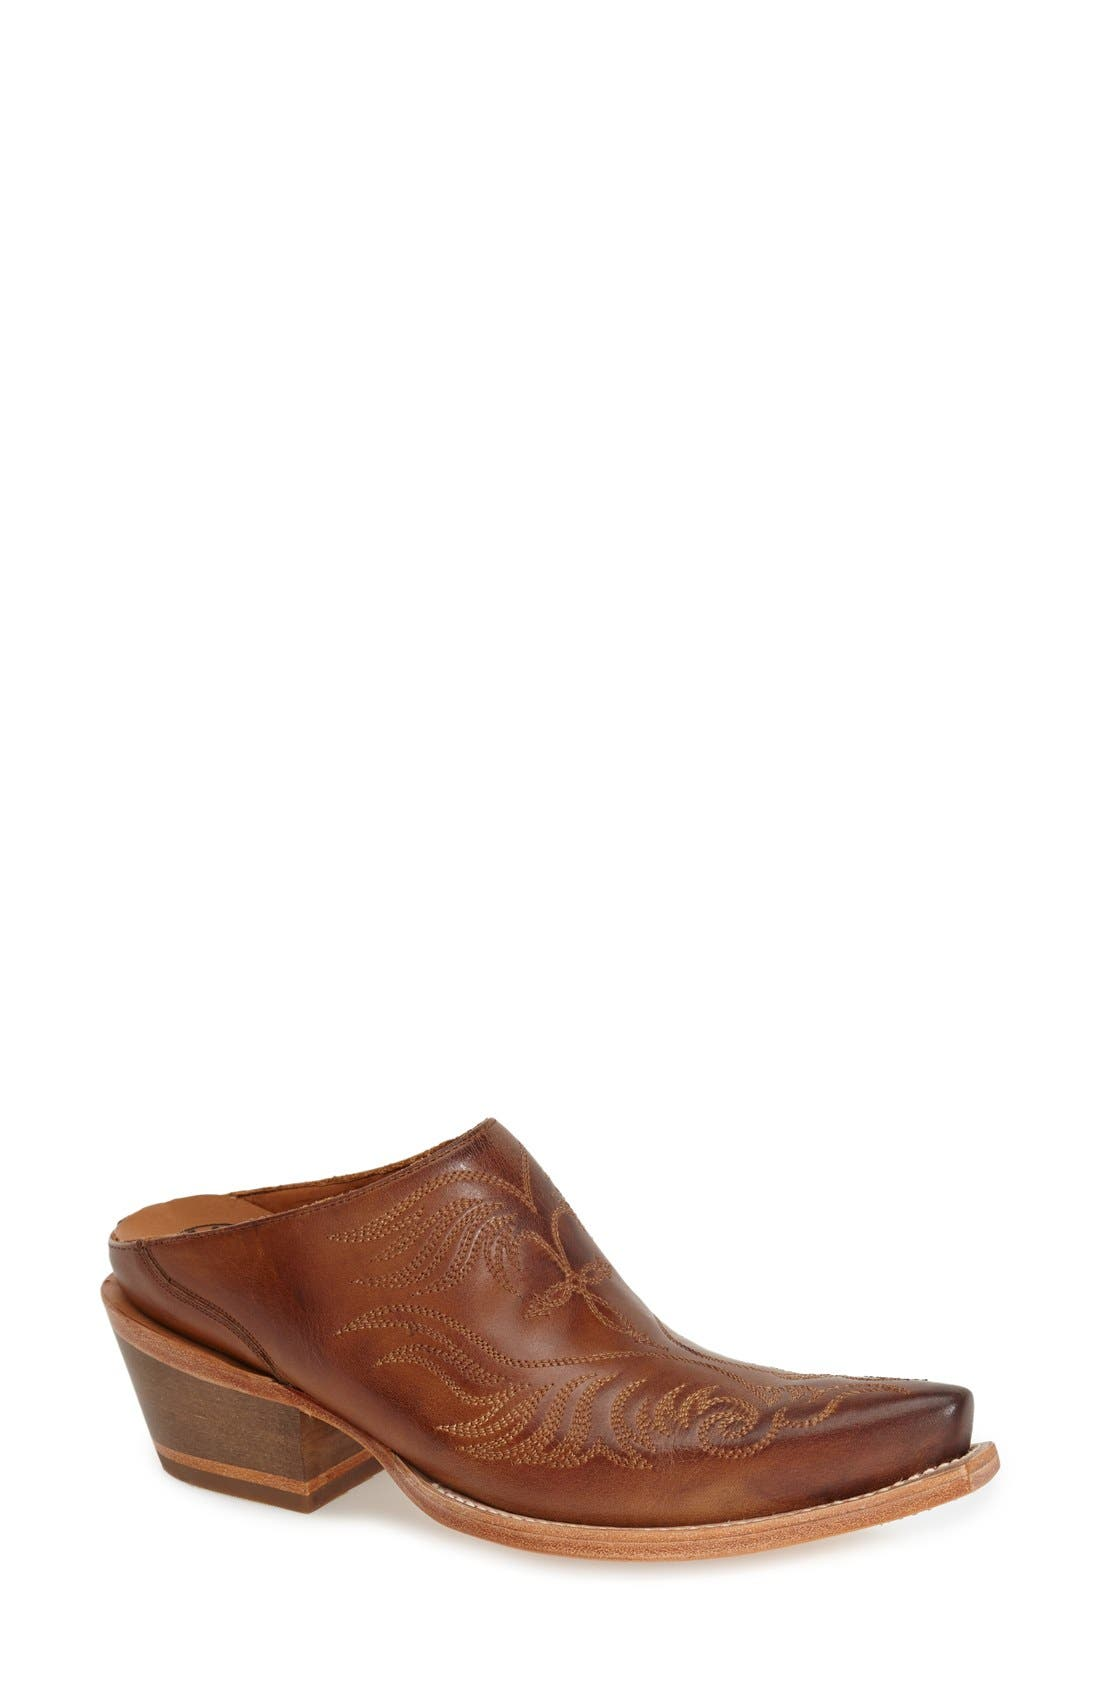 Main Image - Lucchese'Western' Mule (Women)